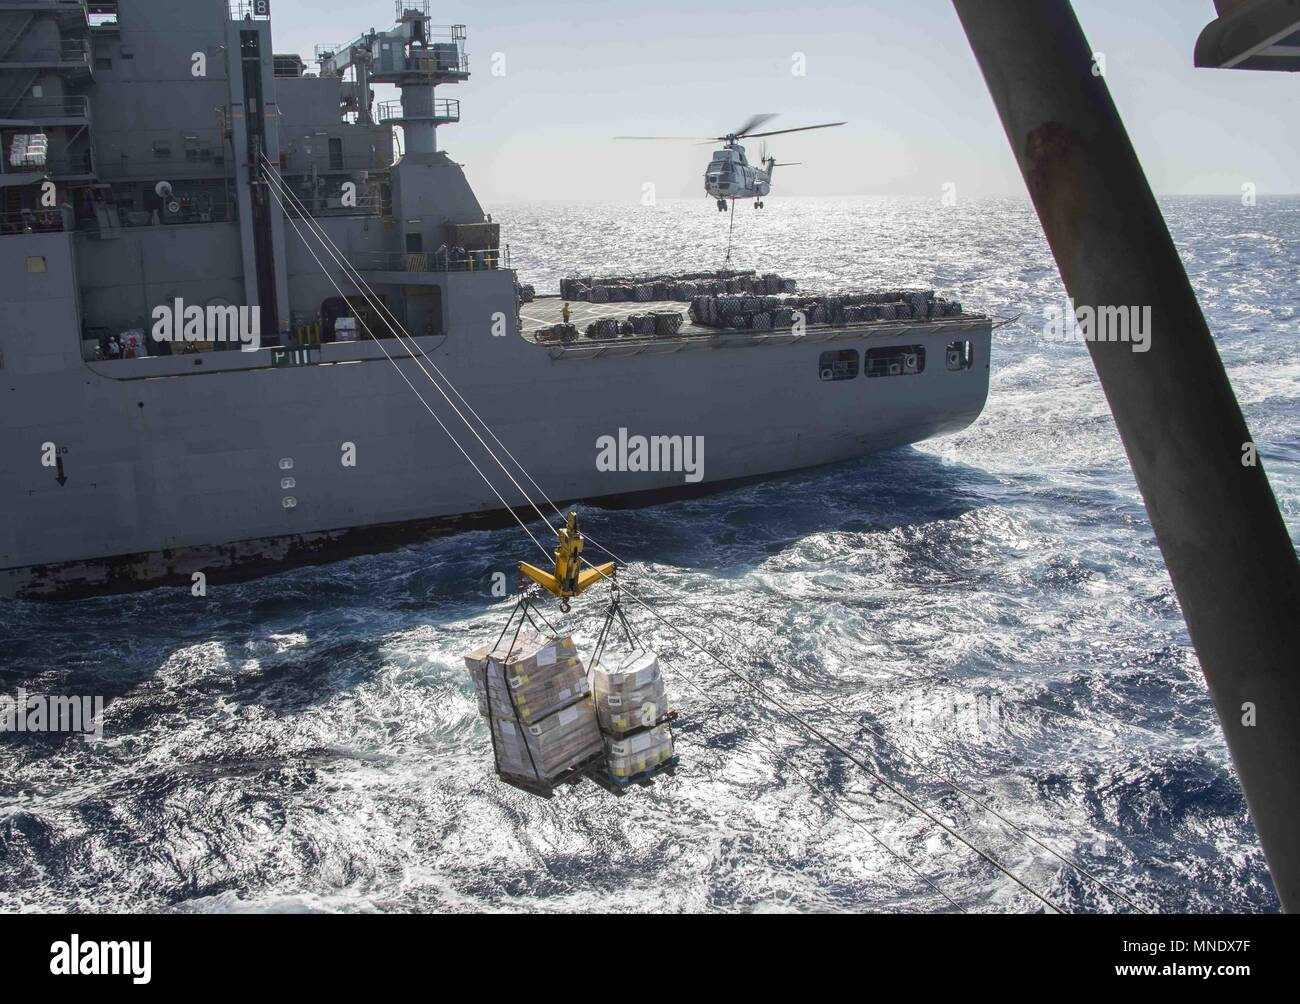 180515-N-AH771-0244 U.S. 5TH FLEET AREA OF OPERATIONS (May 15, 2018) The dry cargo and ammunition ship USNS Amelia Earhart (T-AKE 6) sends pallets of supplies to the Wasp-class amphibious assault ship USS Iwo Jima (LHD 7) during a replenishment-at-sea, May 15, 2018, May 15, 2018. Iwo Jima, homeported in Mayport, Fla. is on deployment to the U.S. 5th Fleet area of operations in support of maritime security operations to reassure allies and partners, and preserve the freedom of navigation and the free flow of commerce in the region. (U.S. Navy photo by Mass Communication Specialist 3rd Class Dan Stock Photo